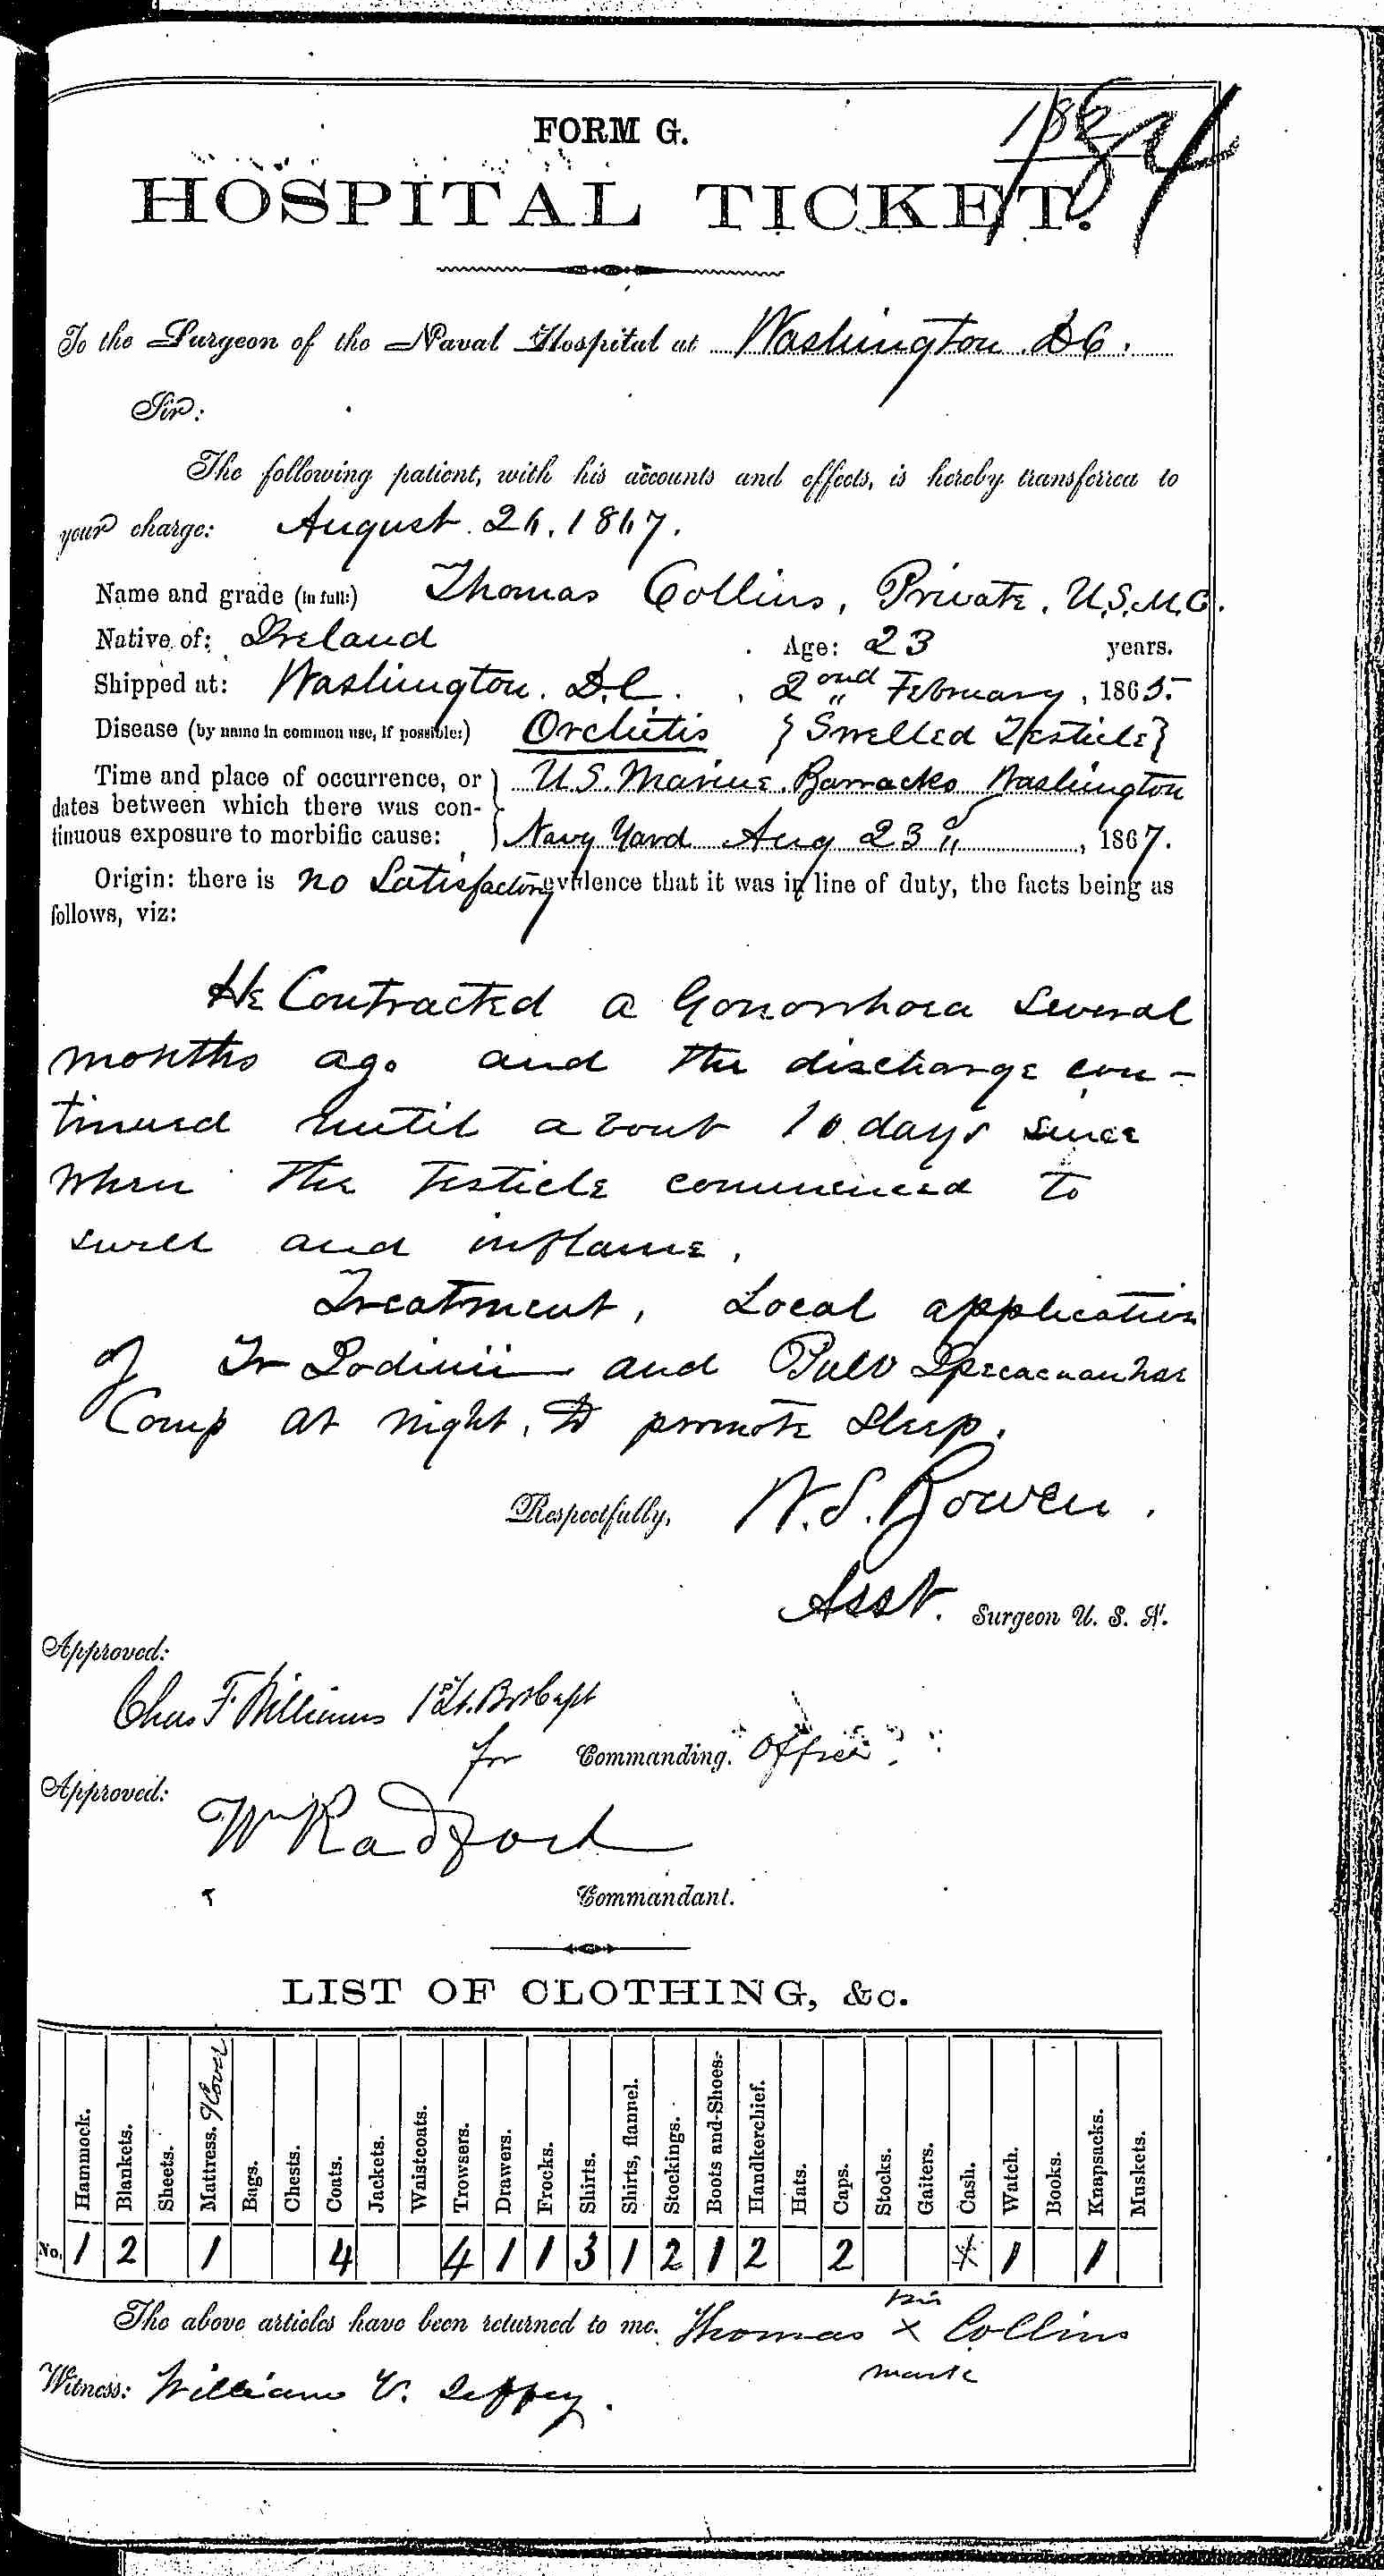 Entry for Thomas Collins (second admission page 2 of 2) in the log Hospital Tickets and Case Papers - Naval Hospital - Washington, D.C. - 1866-68